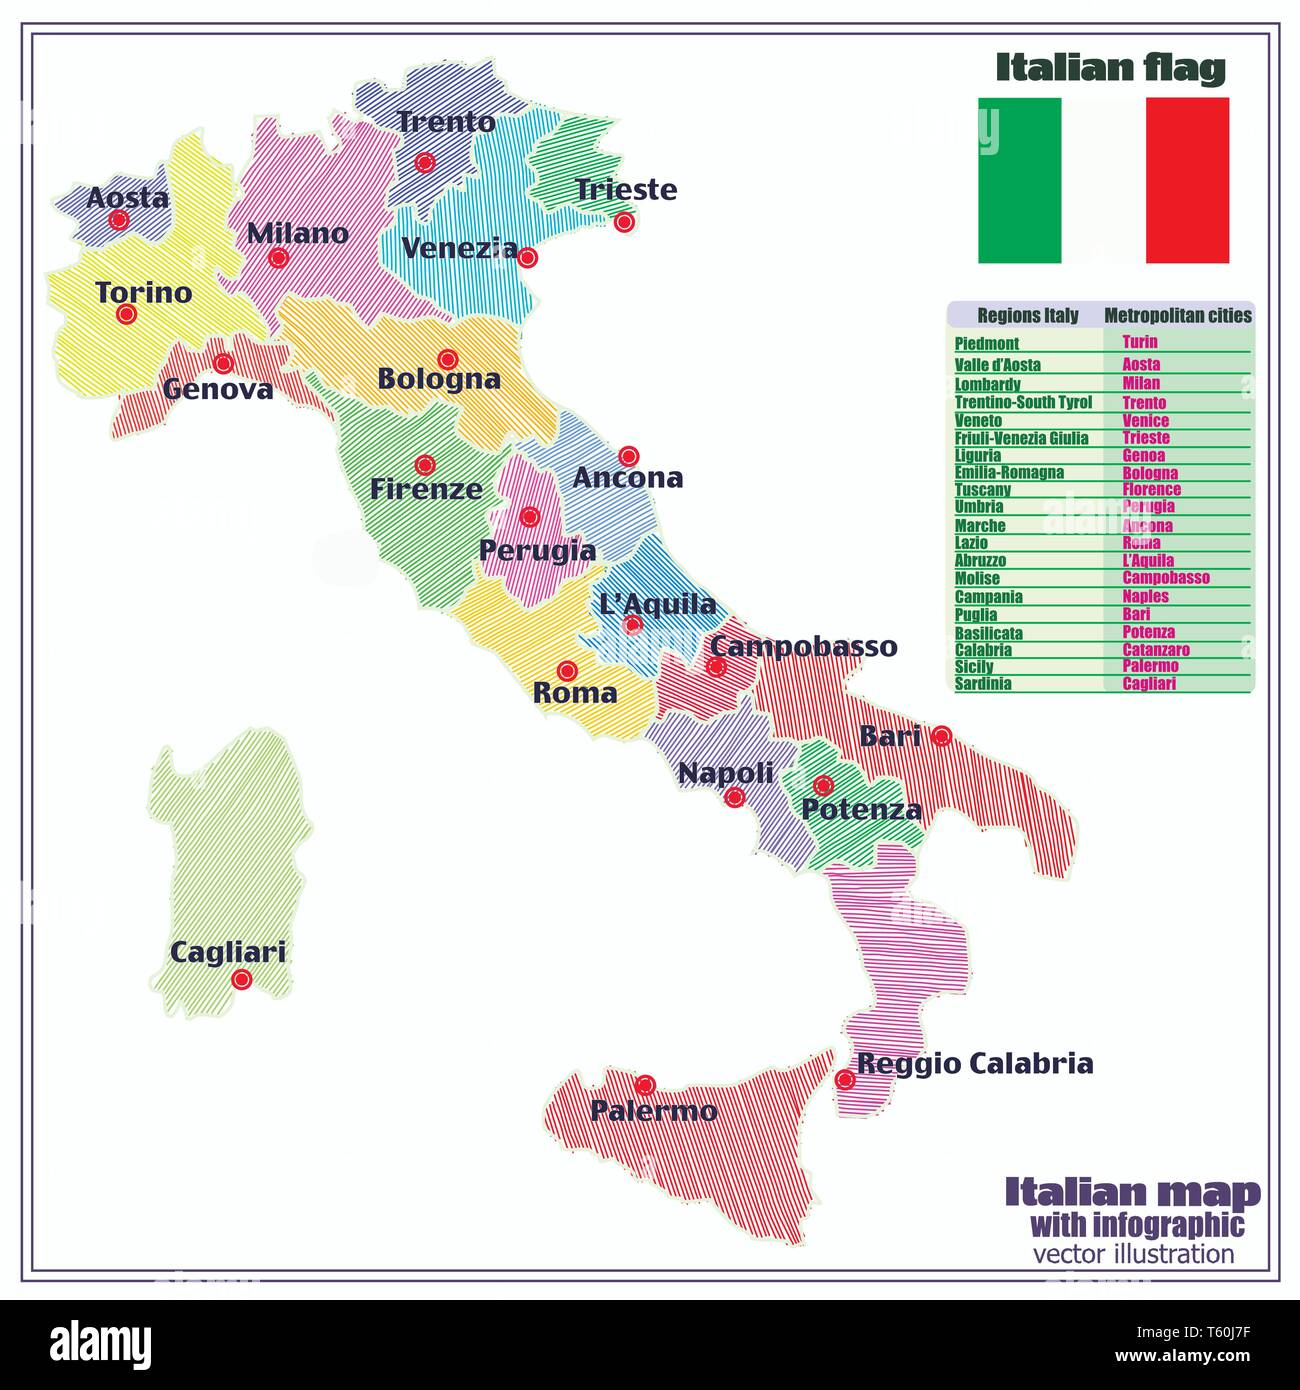 Regions Of Italy Map With Cities.Map Of Italy With Infographic Colorful Illustration With Map Of